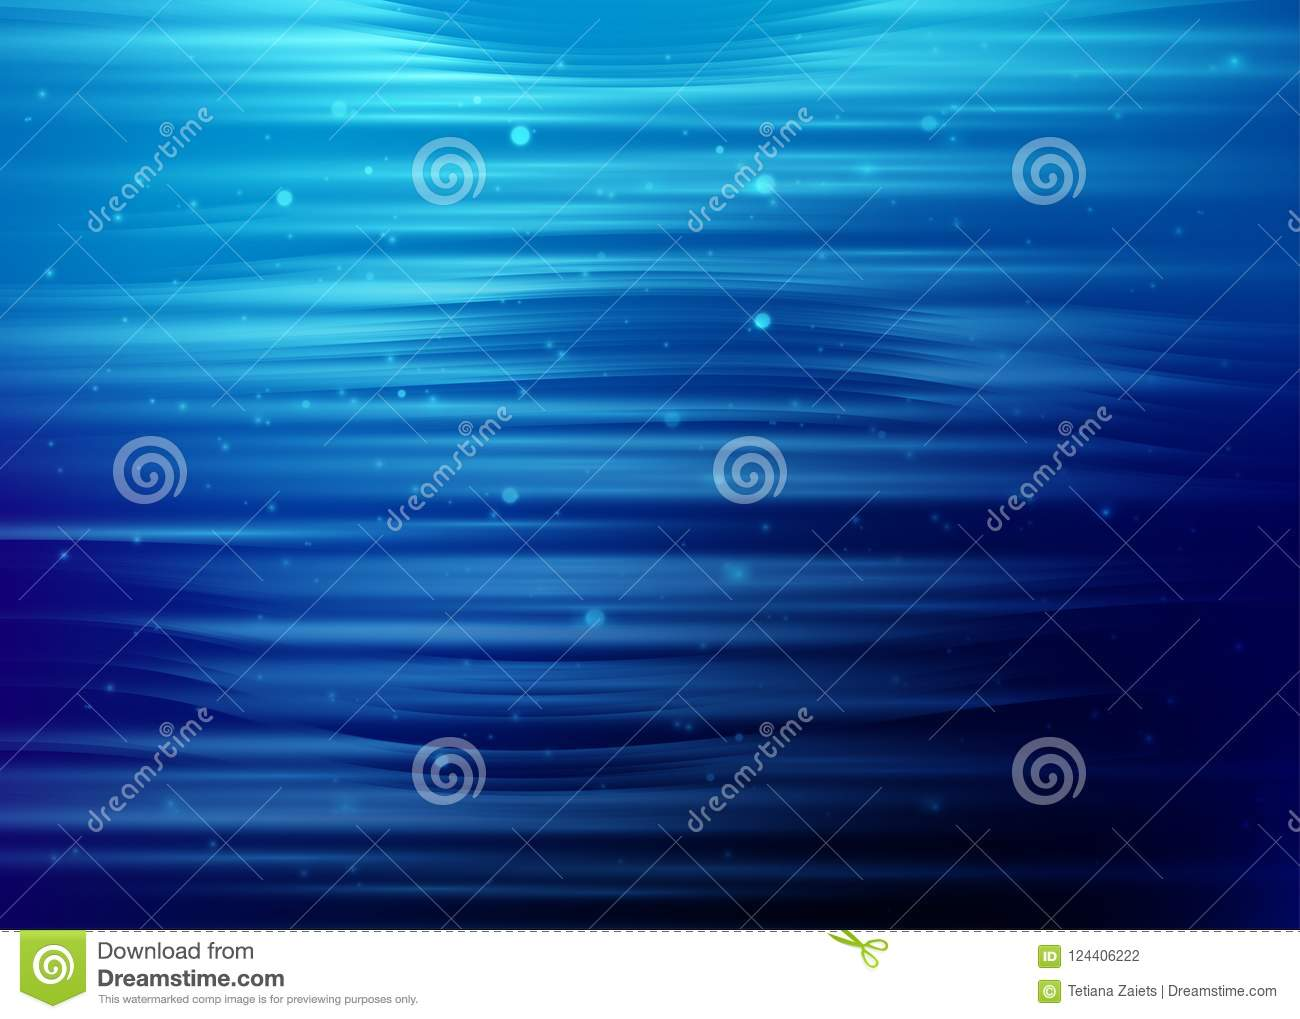 Abstract Technology Background With Light Effect: Abstract Blue Background With Light Dot Particles And